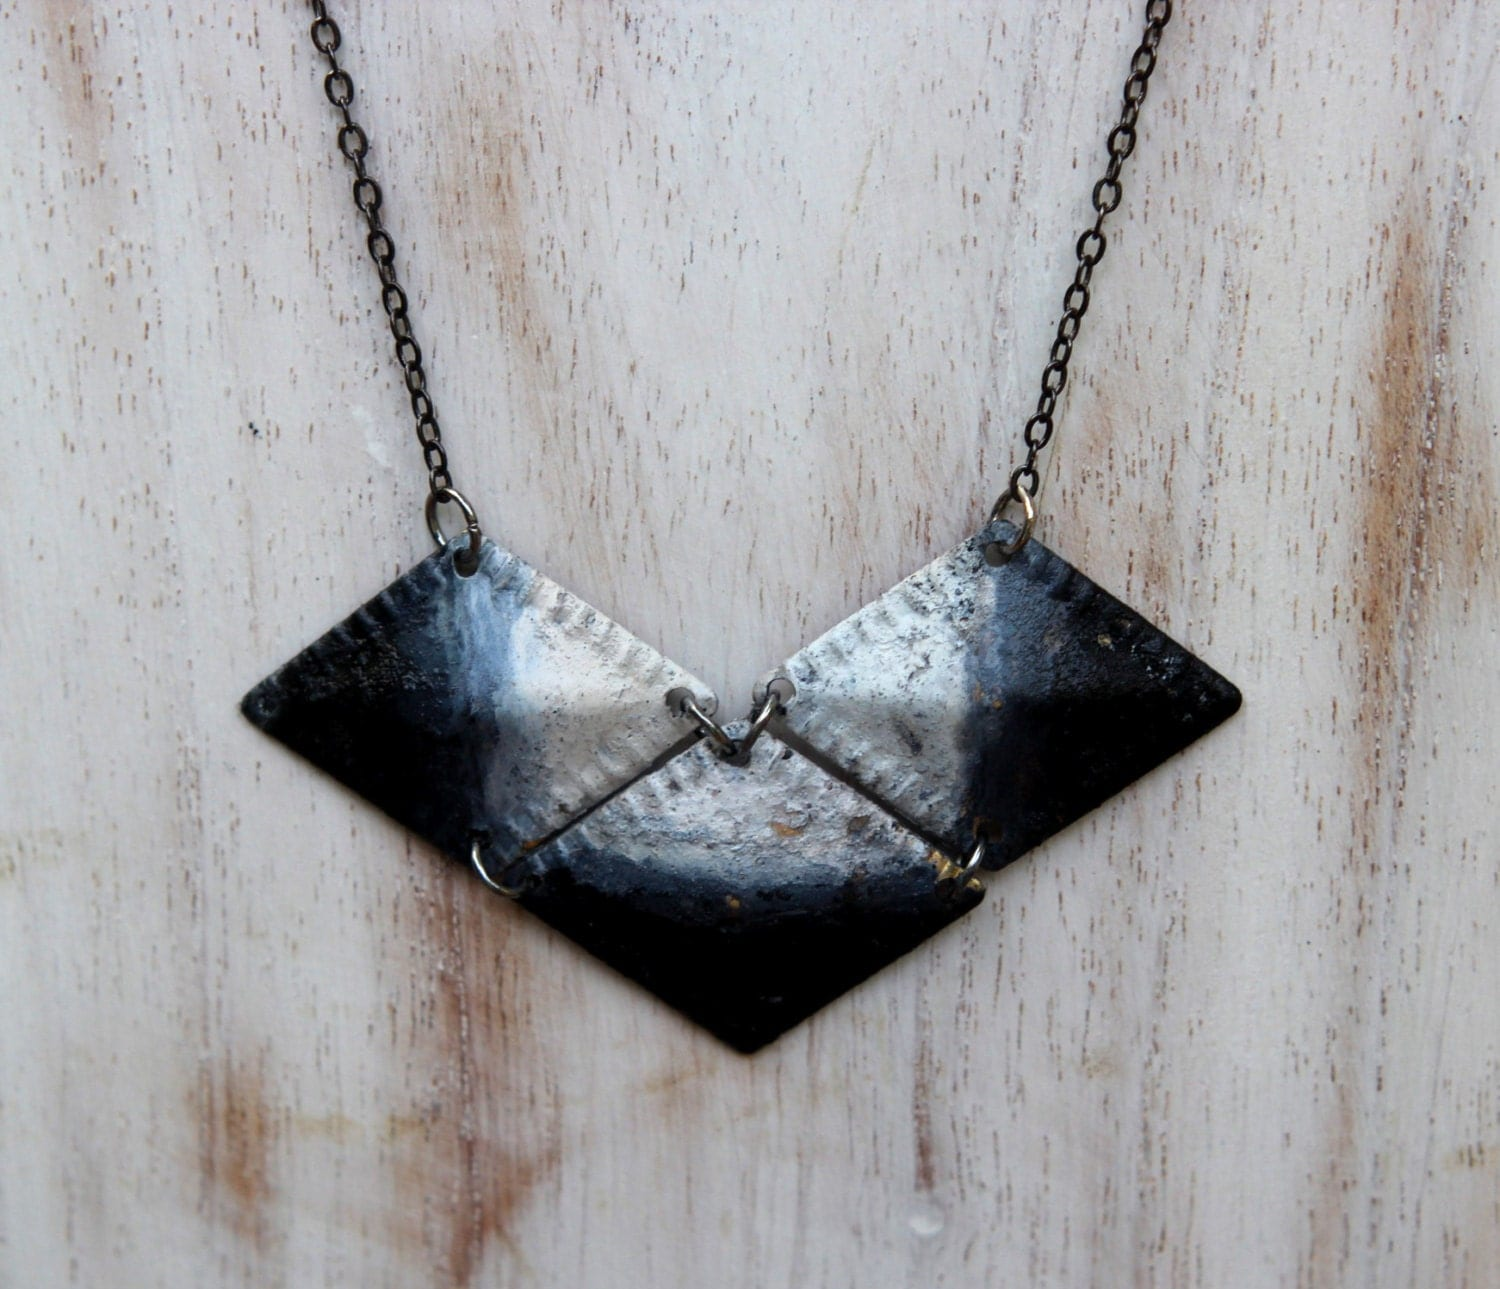 CIJ Charcoal Ombre Necklace - Geometric Diamonds in Black, Gray, Ash, White Gradient - Rustic Armor - Hand Patina - Summer Fashion - Gift B - MySelvagedLife